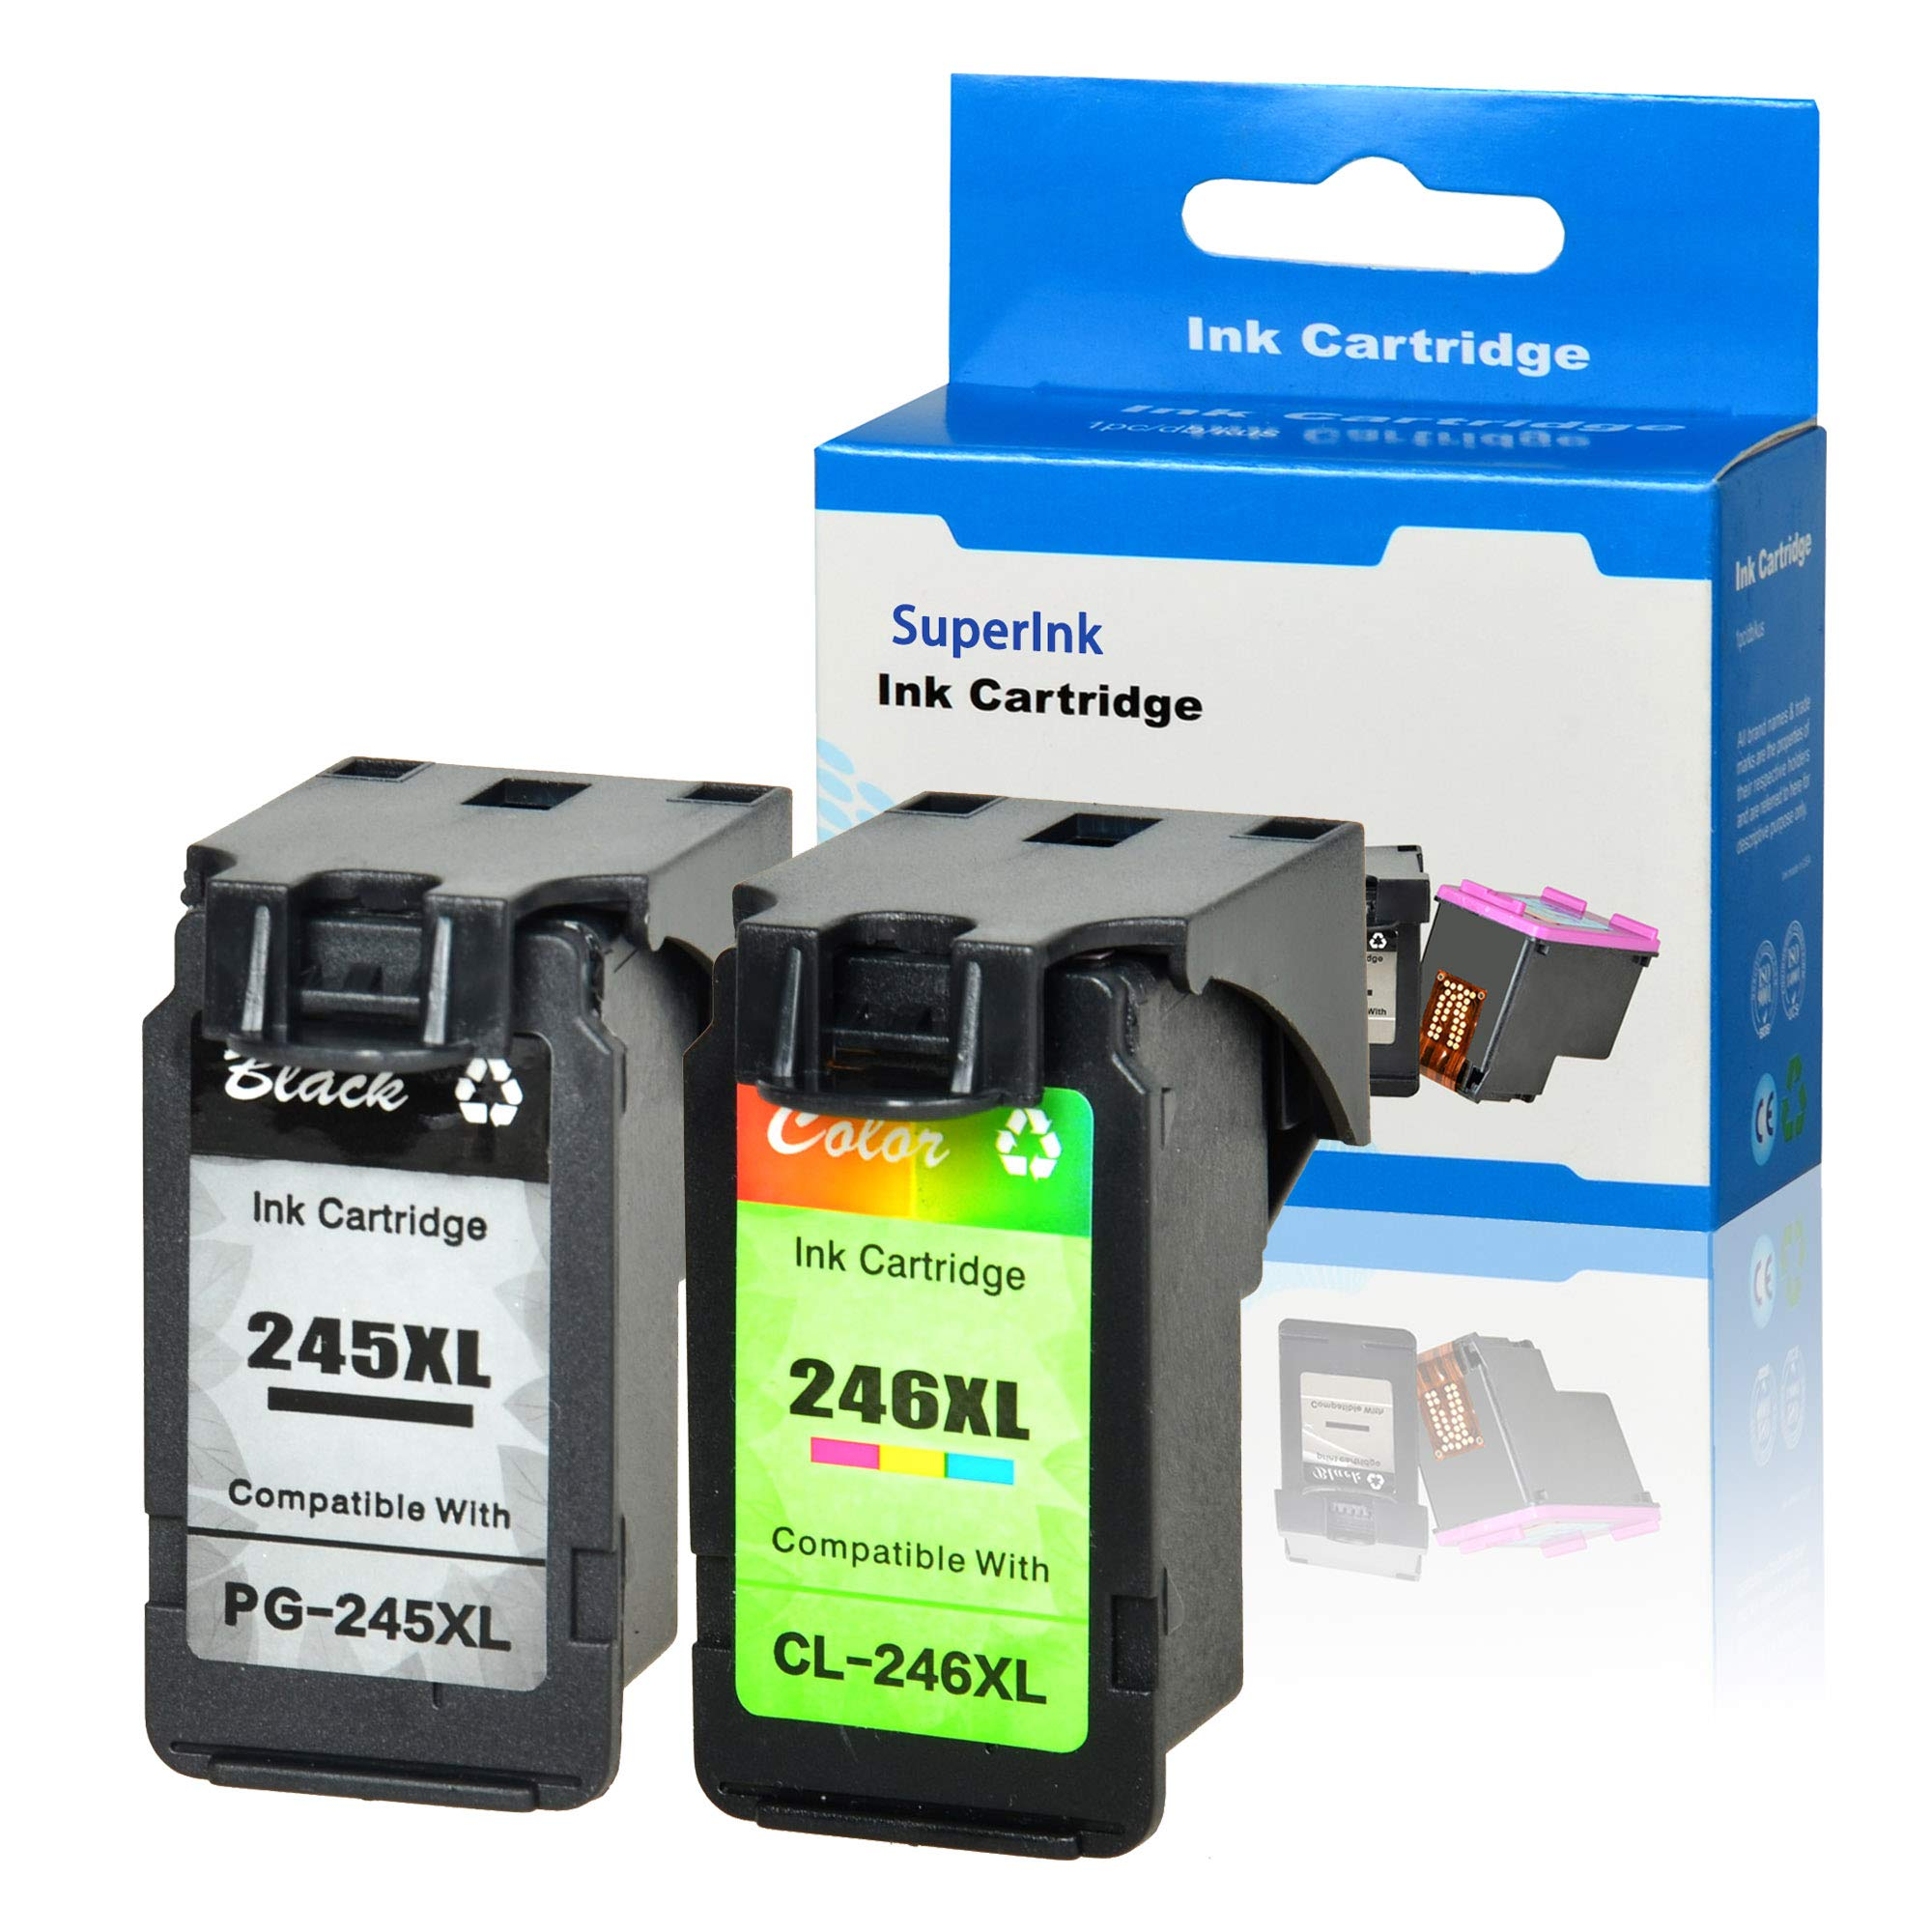 Gallop Remanufactured PG245XL PG-245XL Ink Cartridge Replacement for Canon PIXMA MX492 MX490 MG2420 MG2520 MG2522 MG2920 MG2922 MG3022 MG3029 iP2820 Show Accurate Ink Level 1 Black